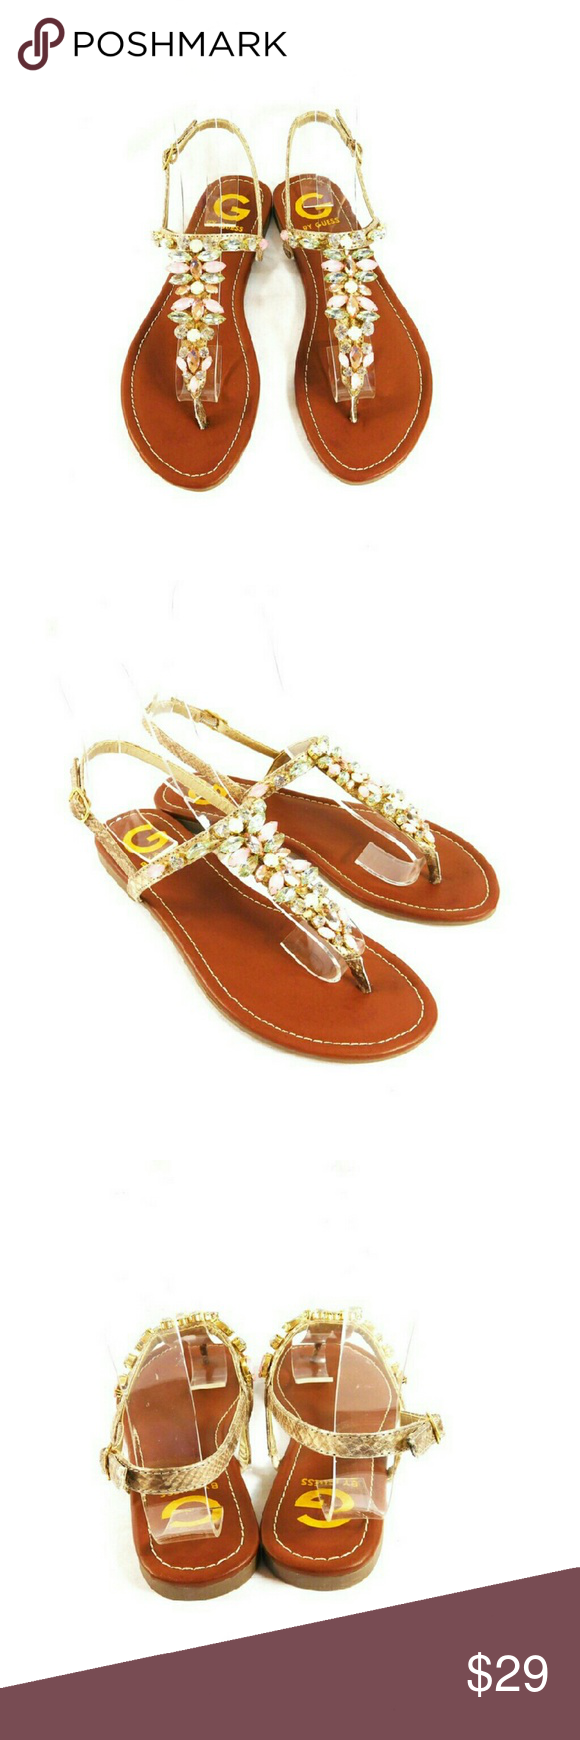 G by Guess Leesure Jeweled Gold Sandals Thanks for checking out my closet. I take all my own pics. The shoes are authentic and new in box. The shoes have a man made upper and encrusted with rhinestones. G by Guess Shoes Sandals